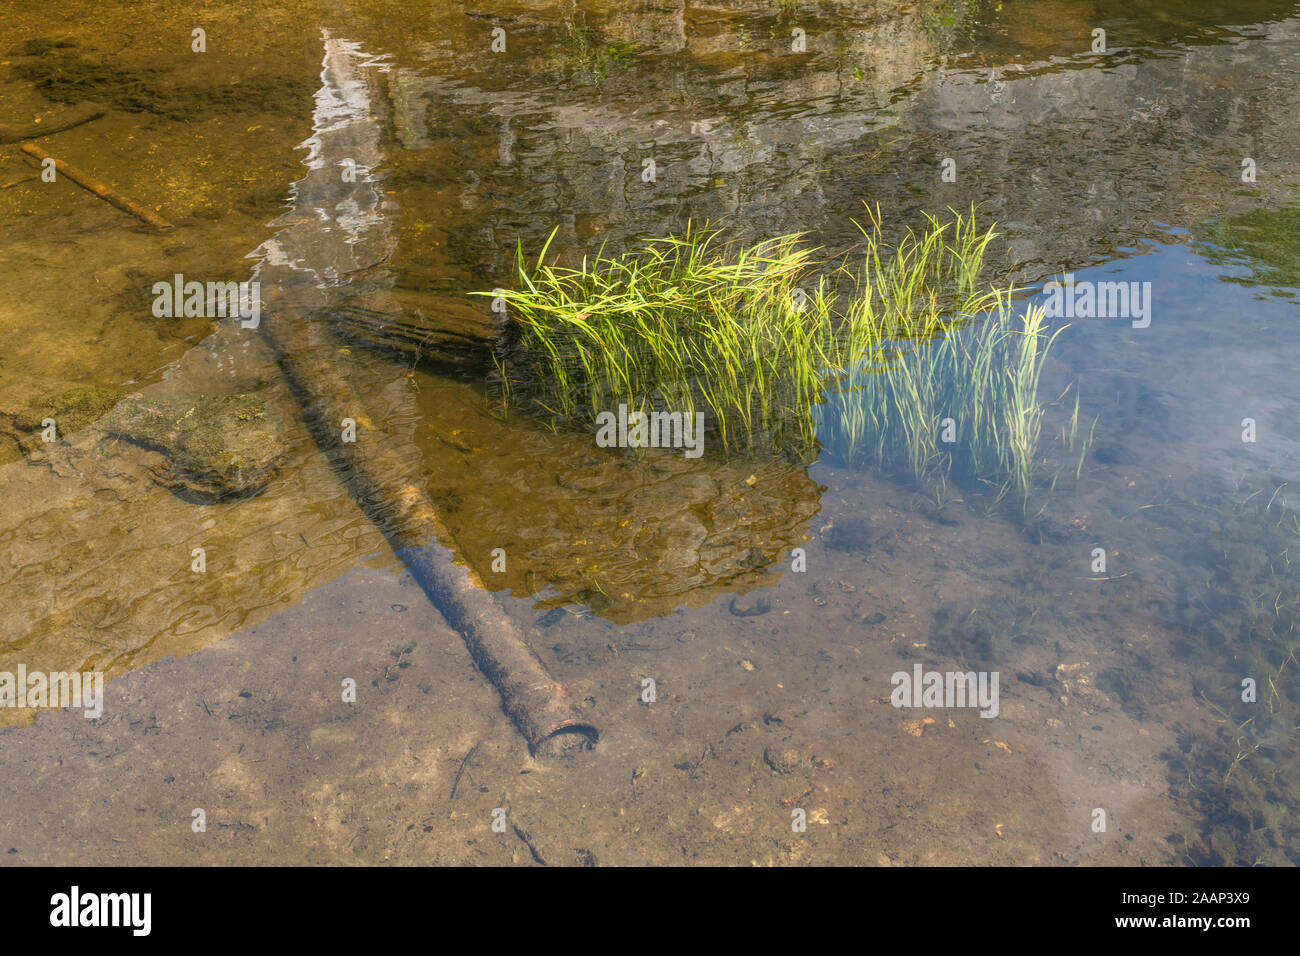 Submerged light green grass-like weeds in flowing River Fowey on sunny day. Believed to be Vallisneria spiralis / Eelweed, Eelgrass, tapeweed. Stock Photo